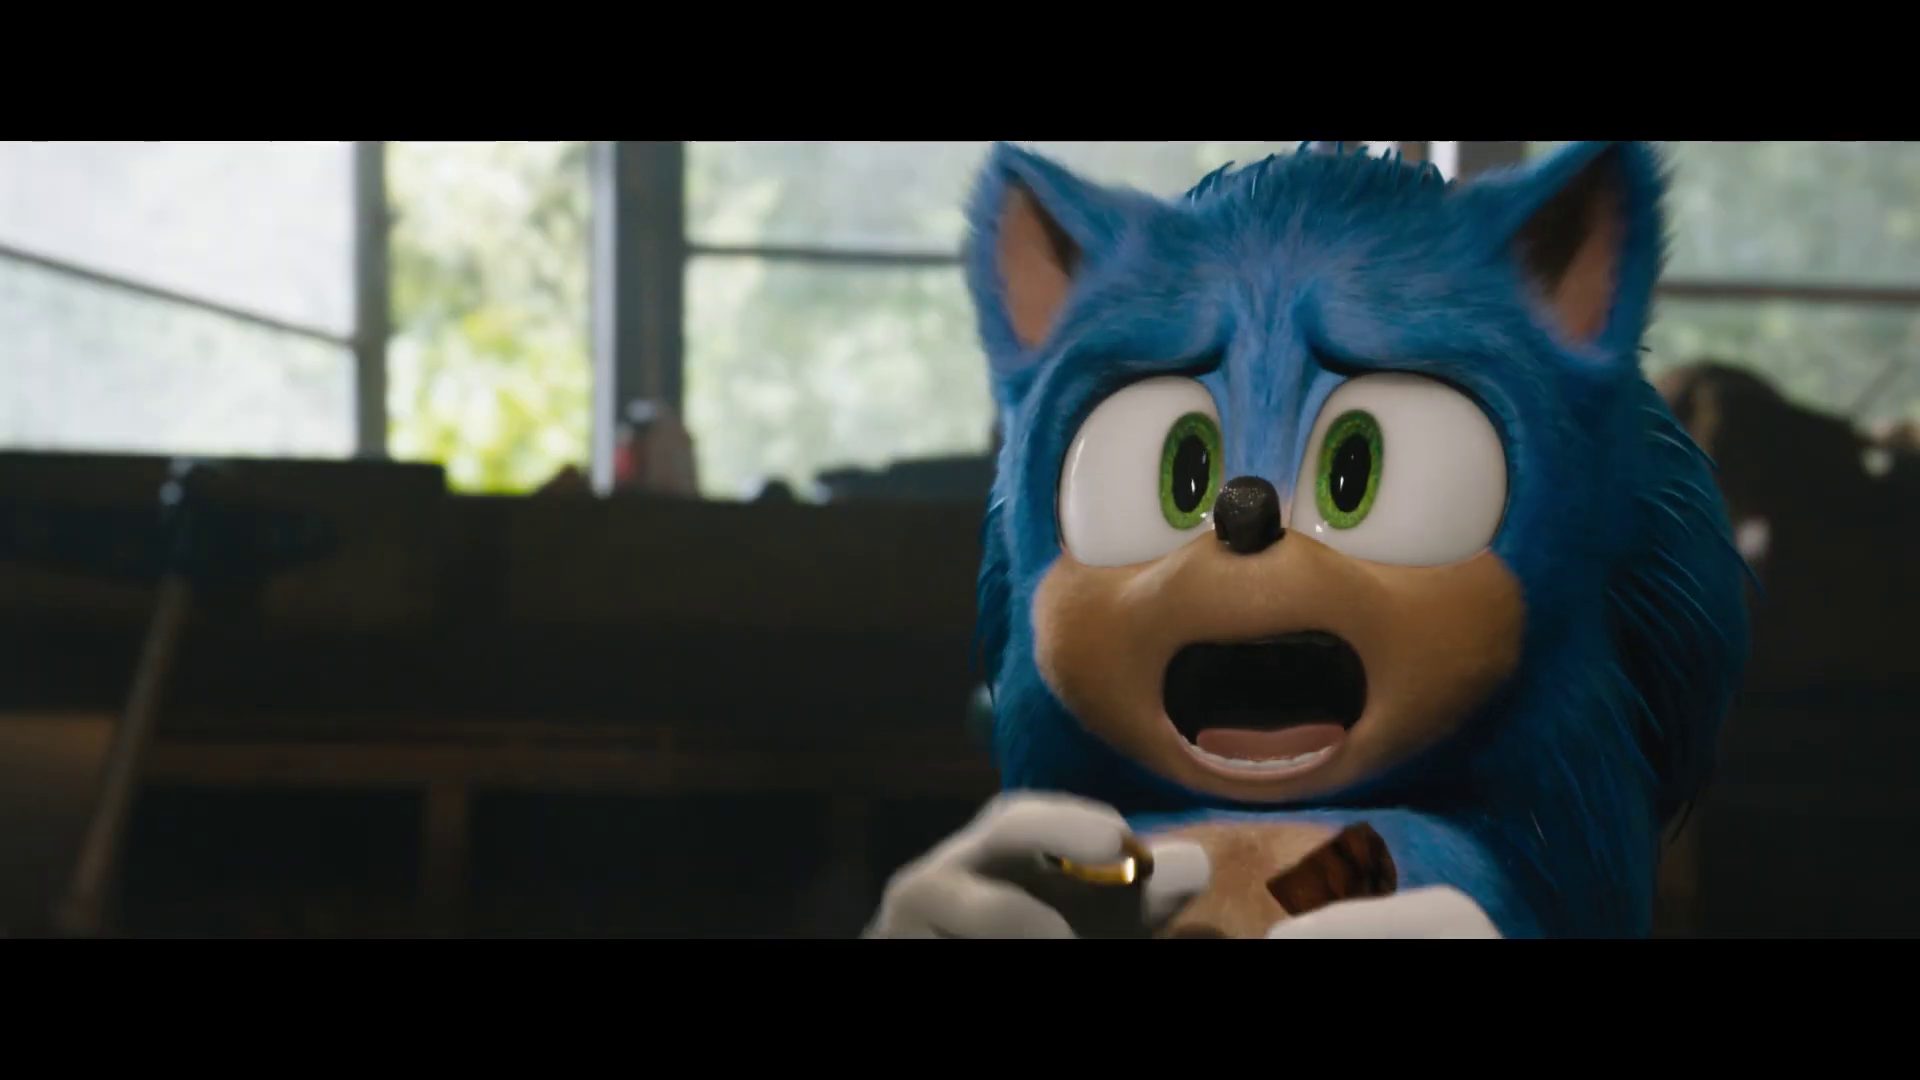 Meow Sonic The Hedgehog 2020 Film Know Your Meme